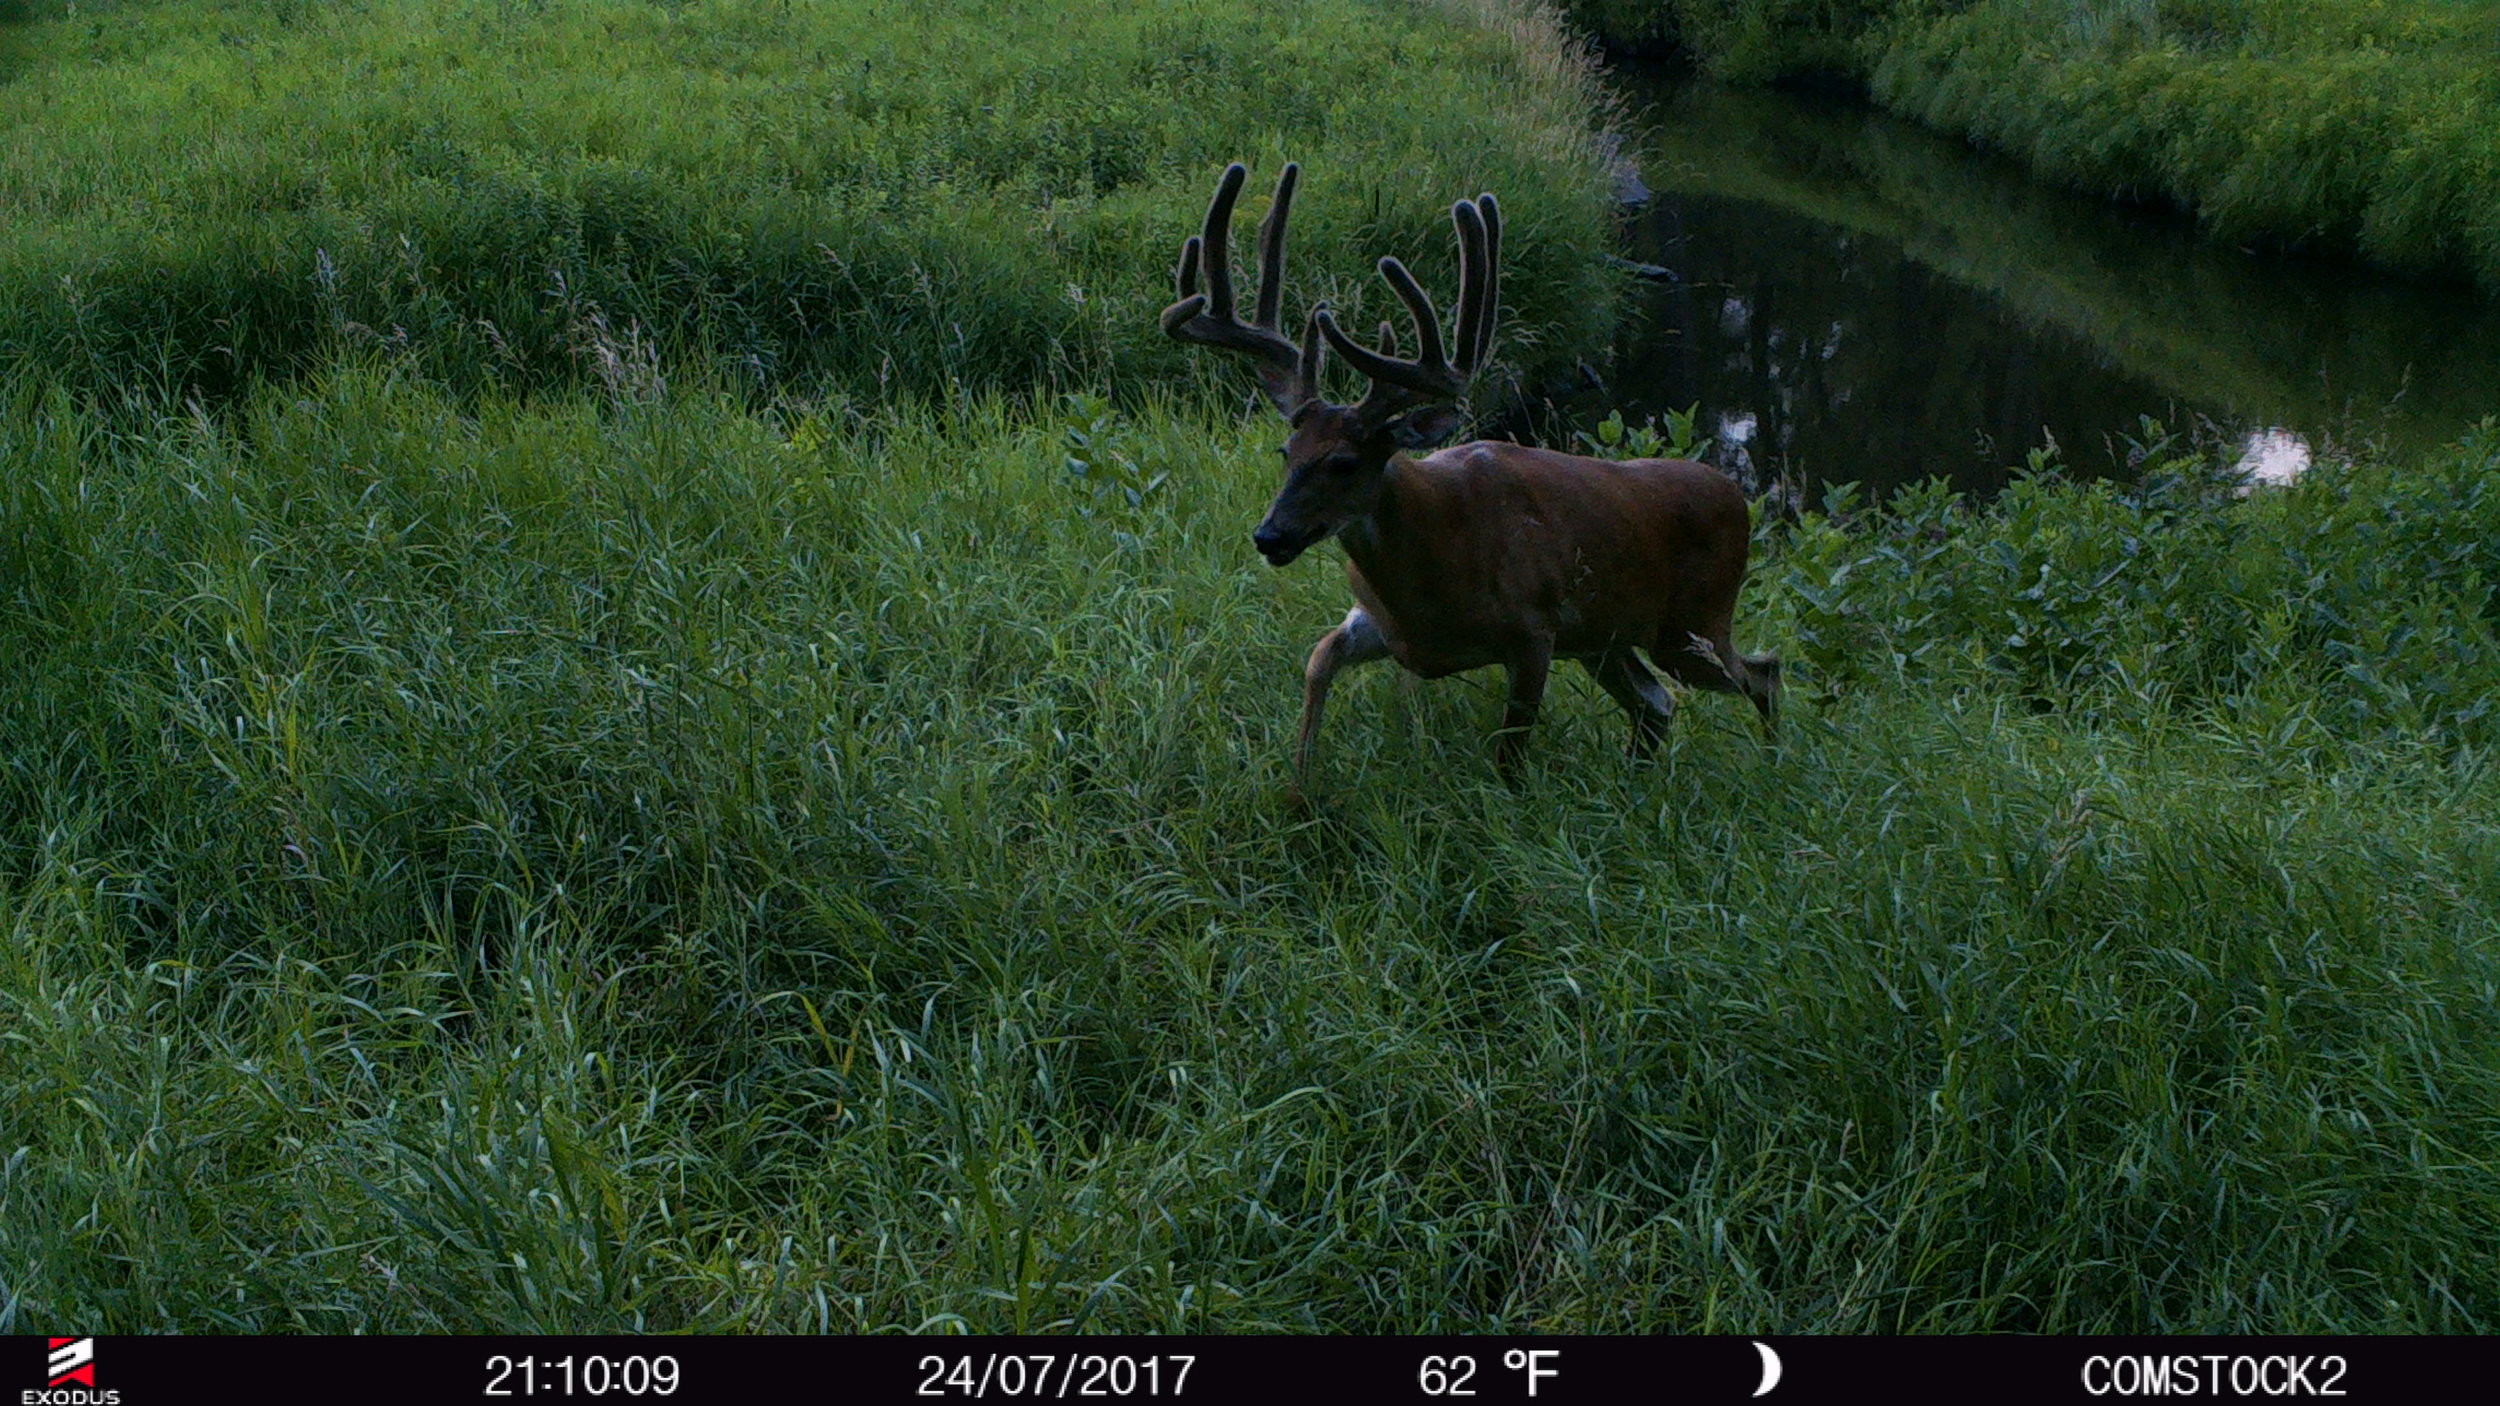 Over the course of the next few weeks, I'll be trying to figure out how to put this buck down.